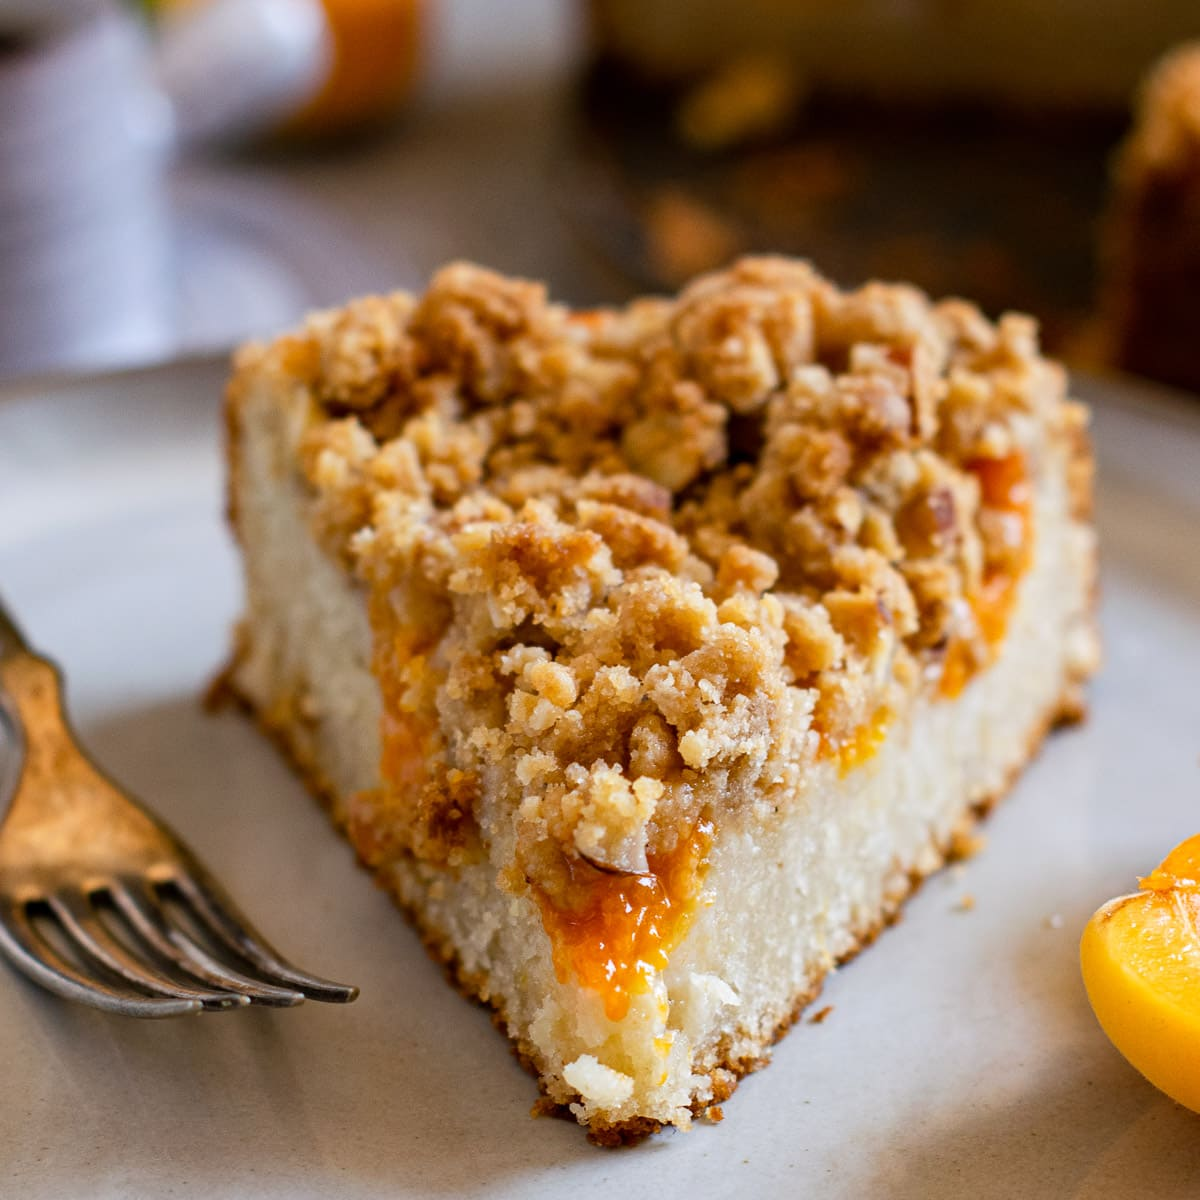 Almond Apricot Crumb Cake seved on a plate